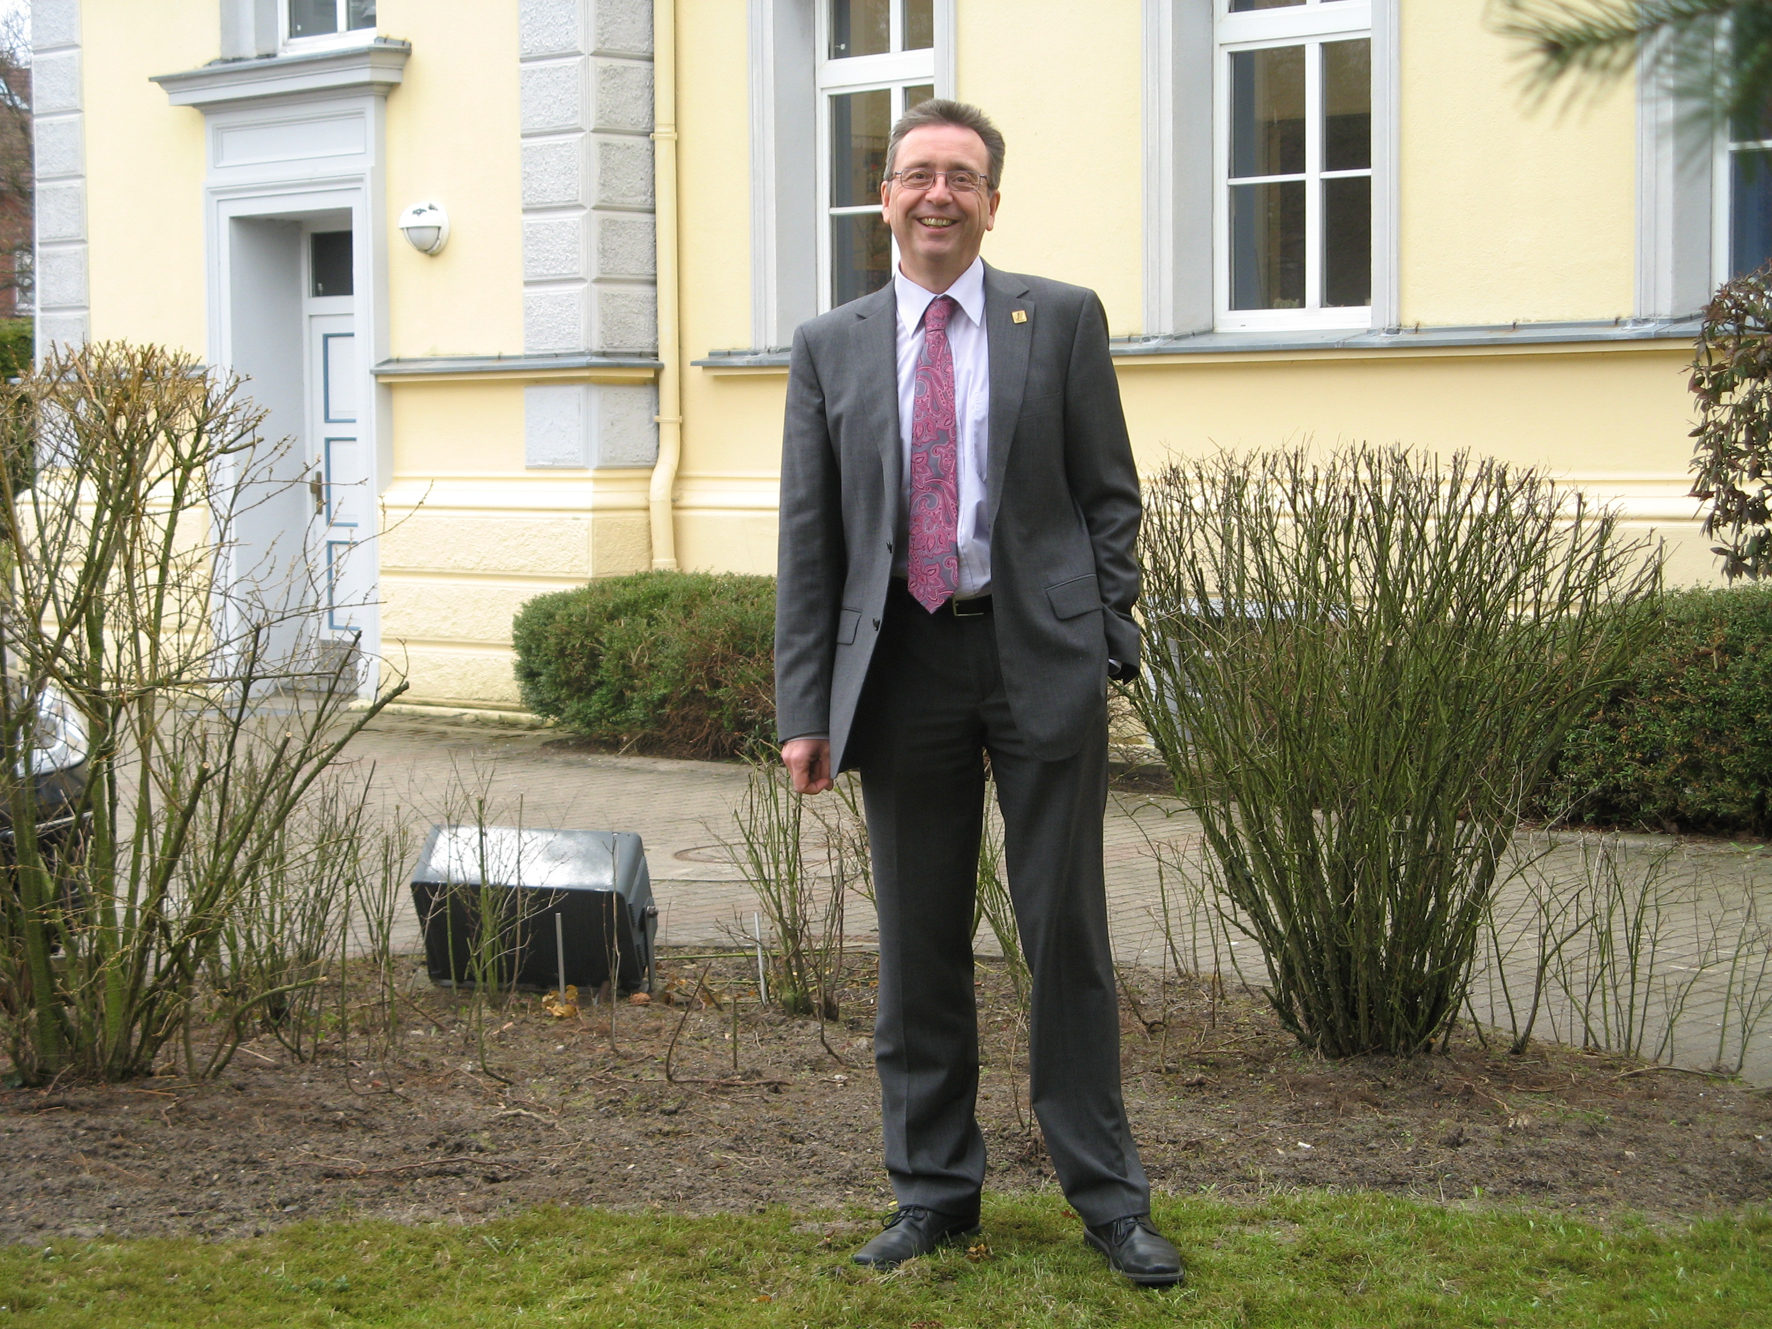 Martin Lochte-Holtgreven, Managing Director of Consist Software Solutions, in front of the company building in Kiel. Source: Consist Software Solutions